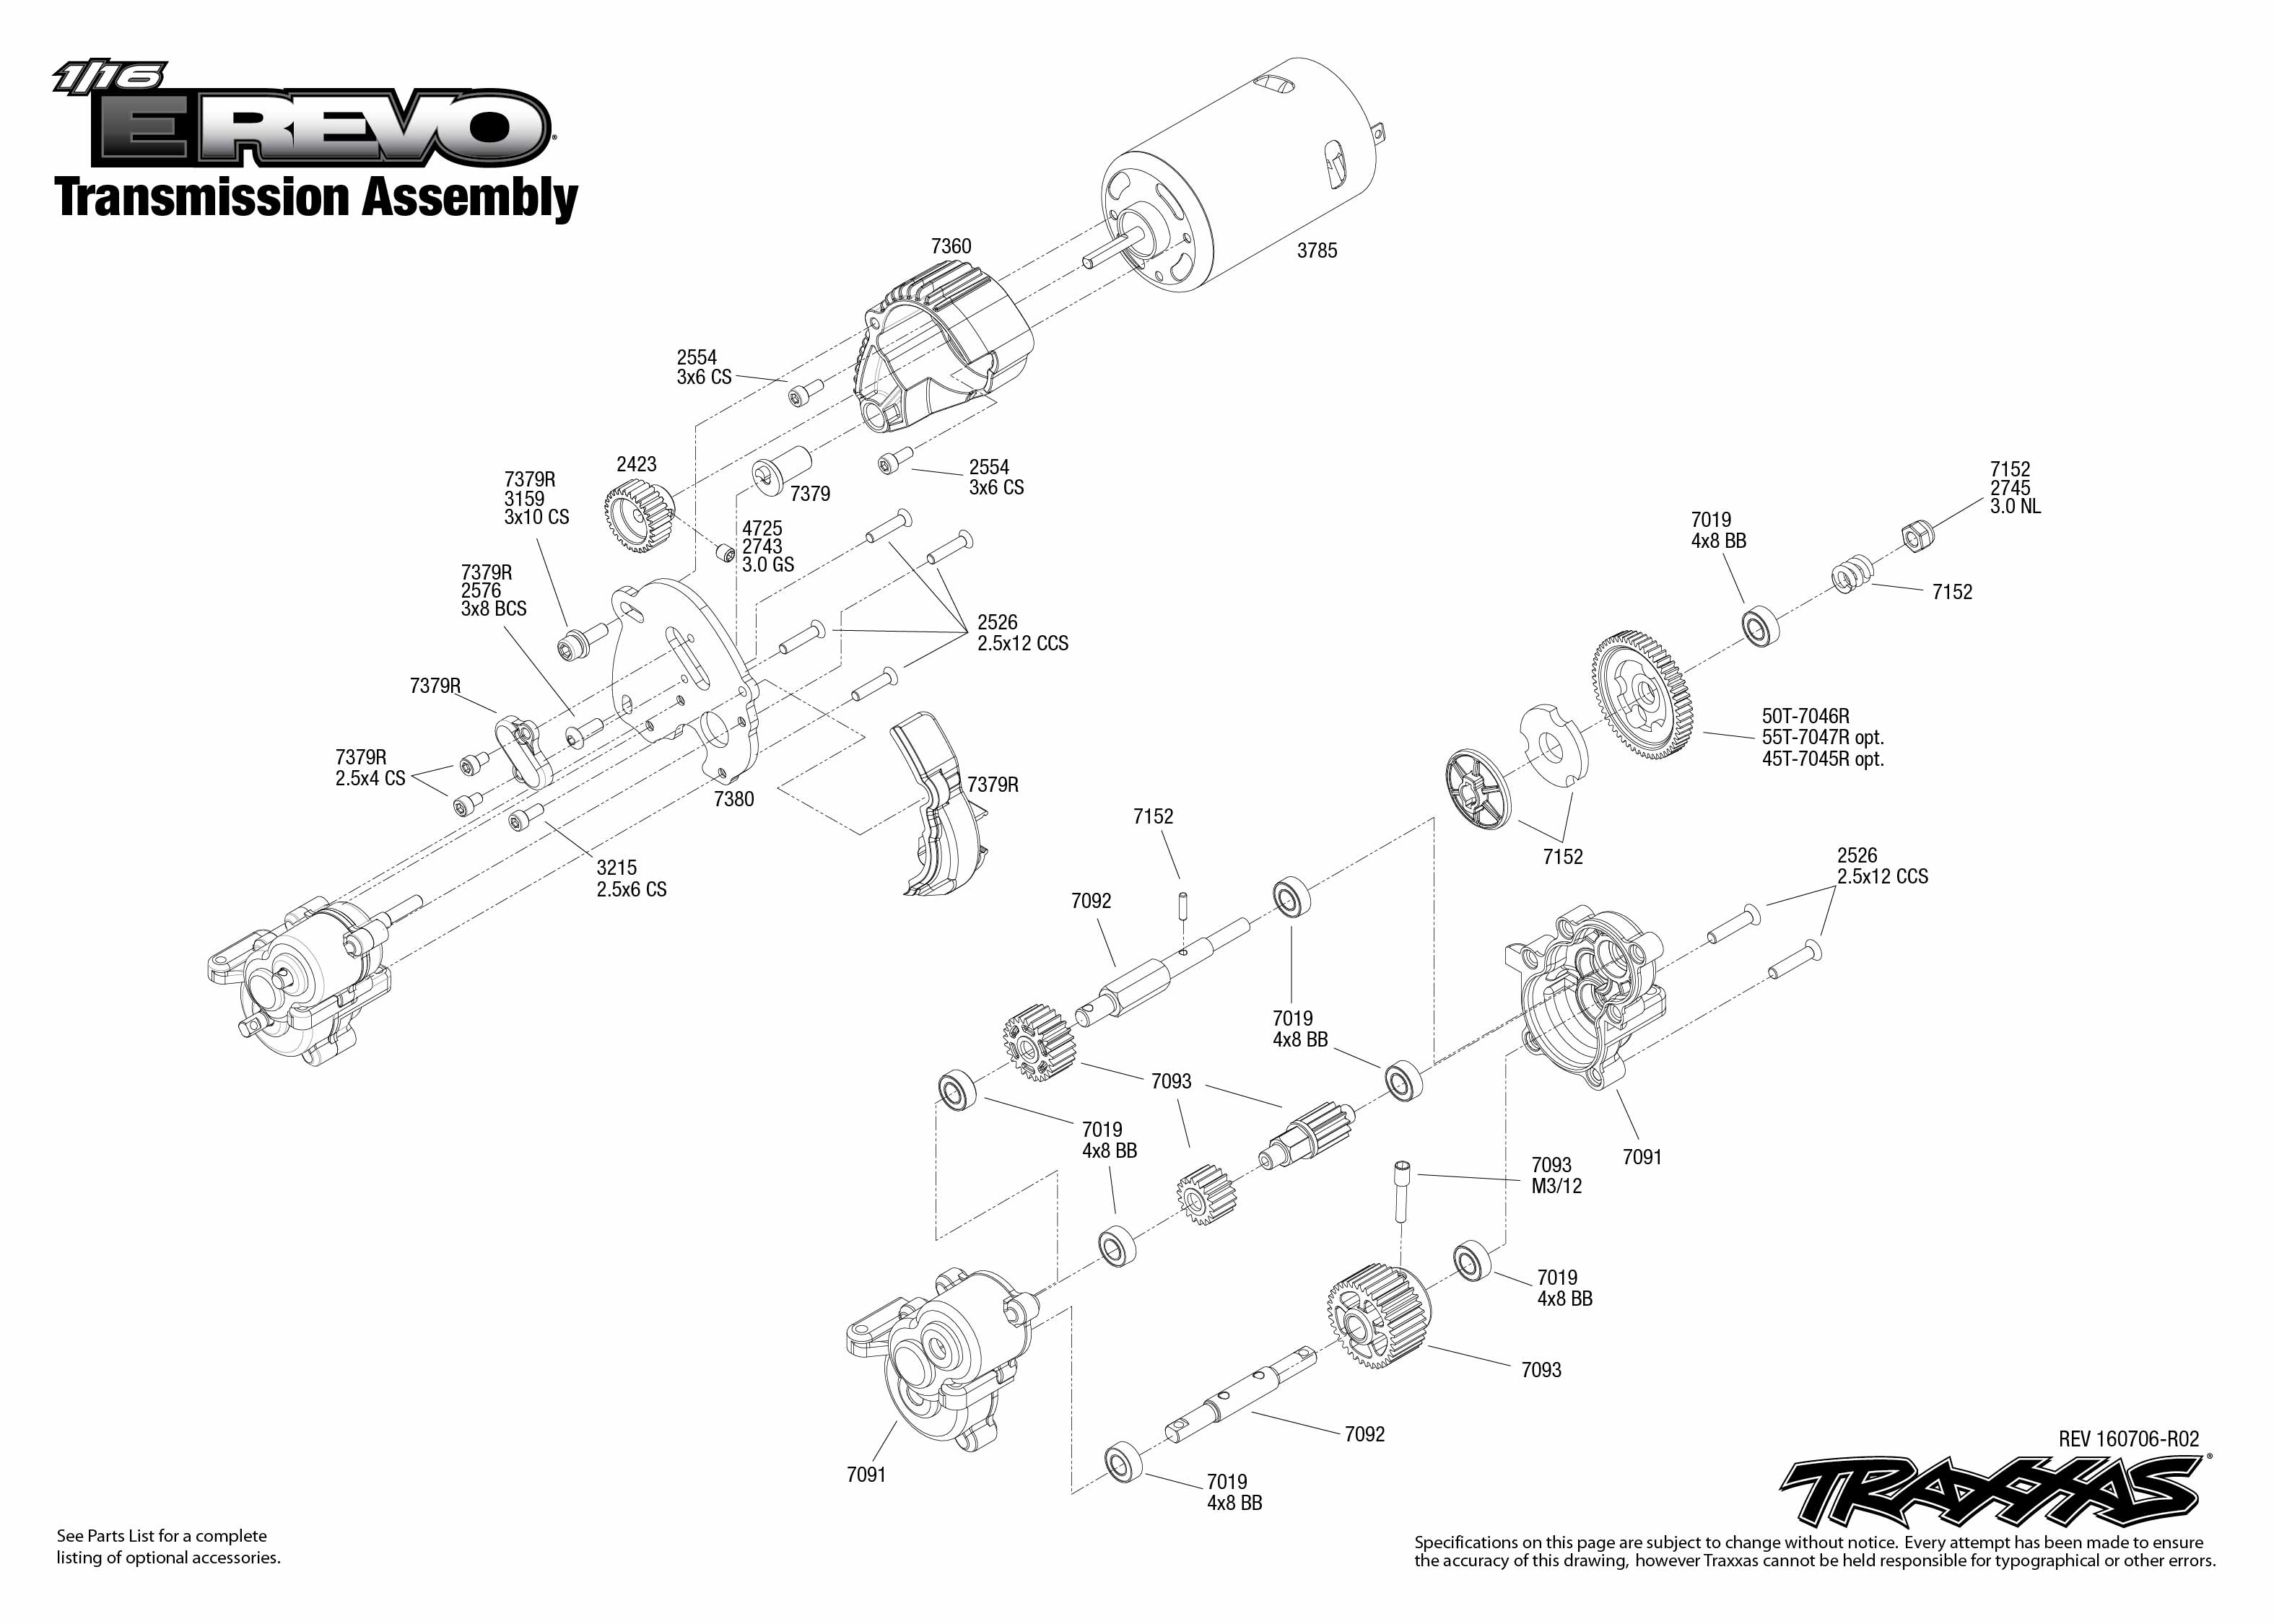 71054 1_exploded views 160706_71054 1 Transmission Assembly 1 16 e revo (71054 1) transmission assembly exploded view traxxas  at alyssarenee.co